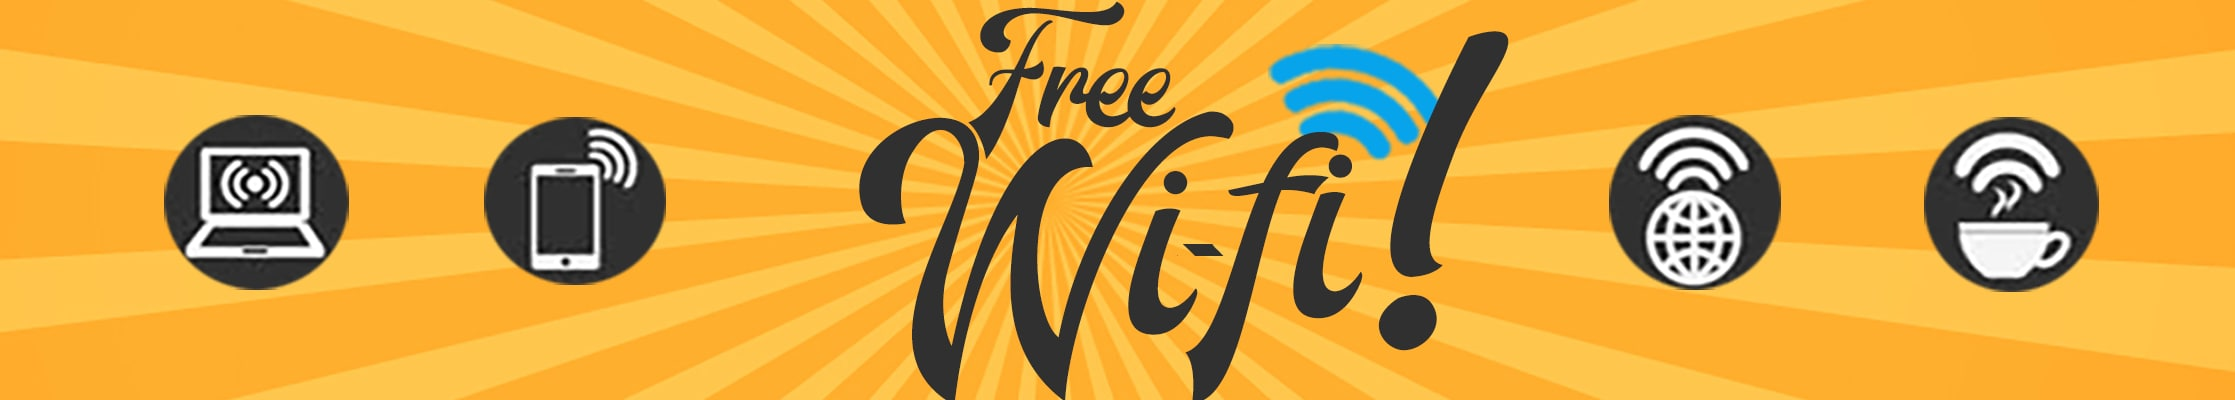 Free wifi at american toyota albuquerque add alt image tag here welcome to larry h miller